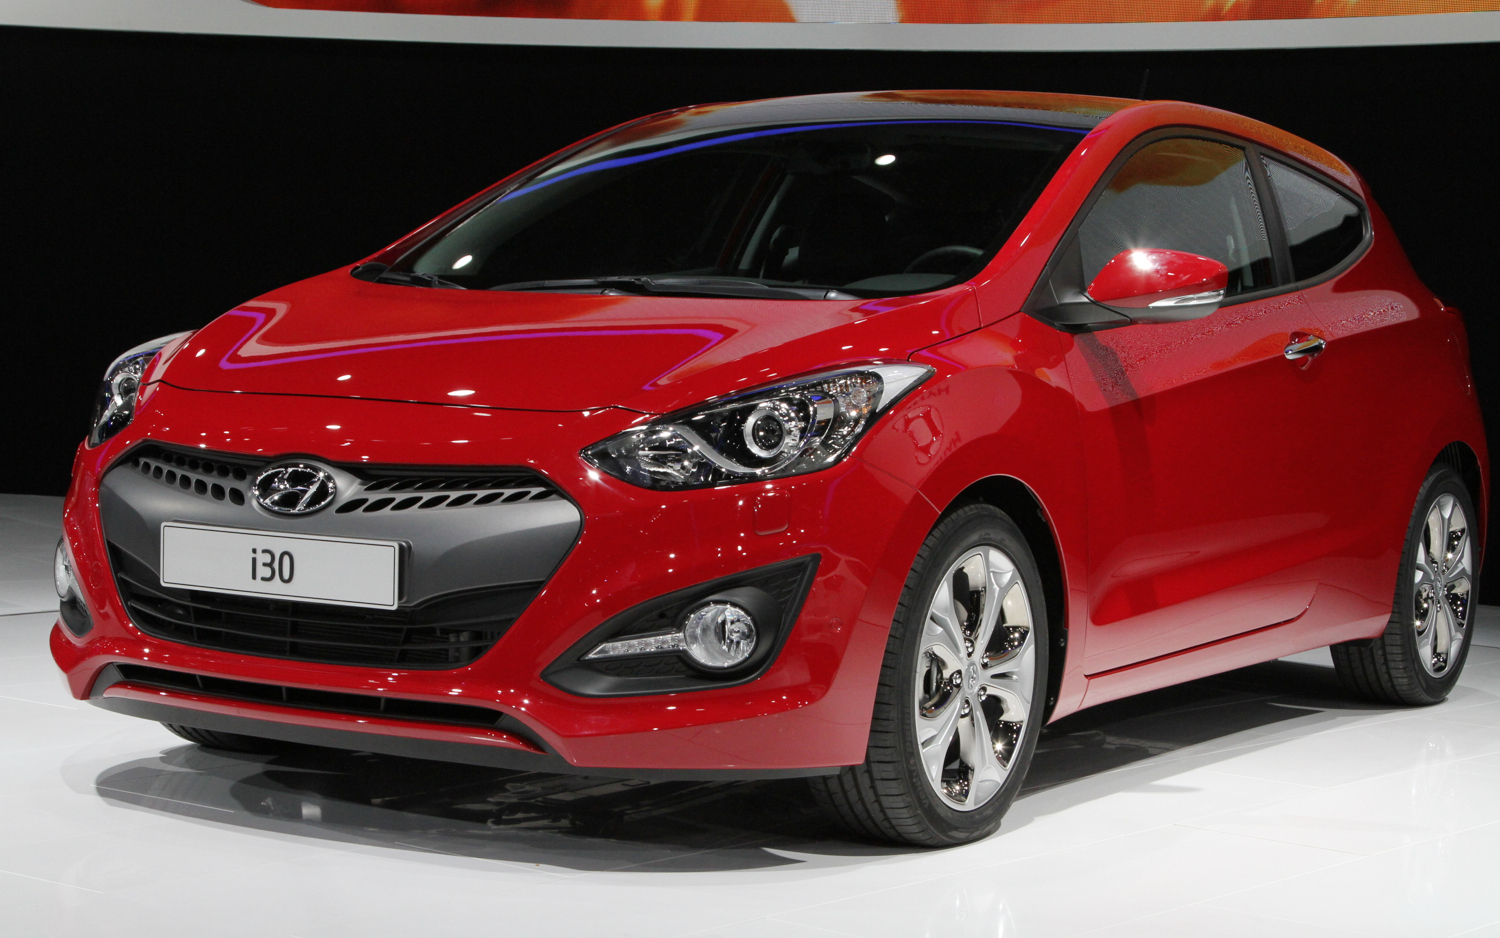 Two Door Cars 2013 Hyundai I30 Two Door New Cars Reviews